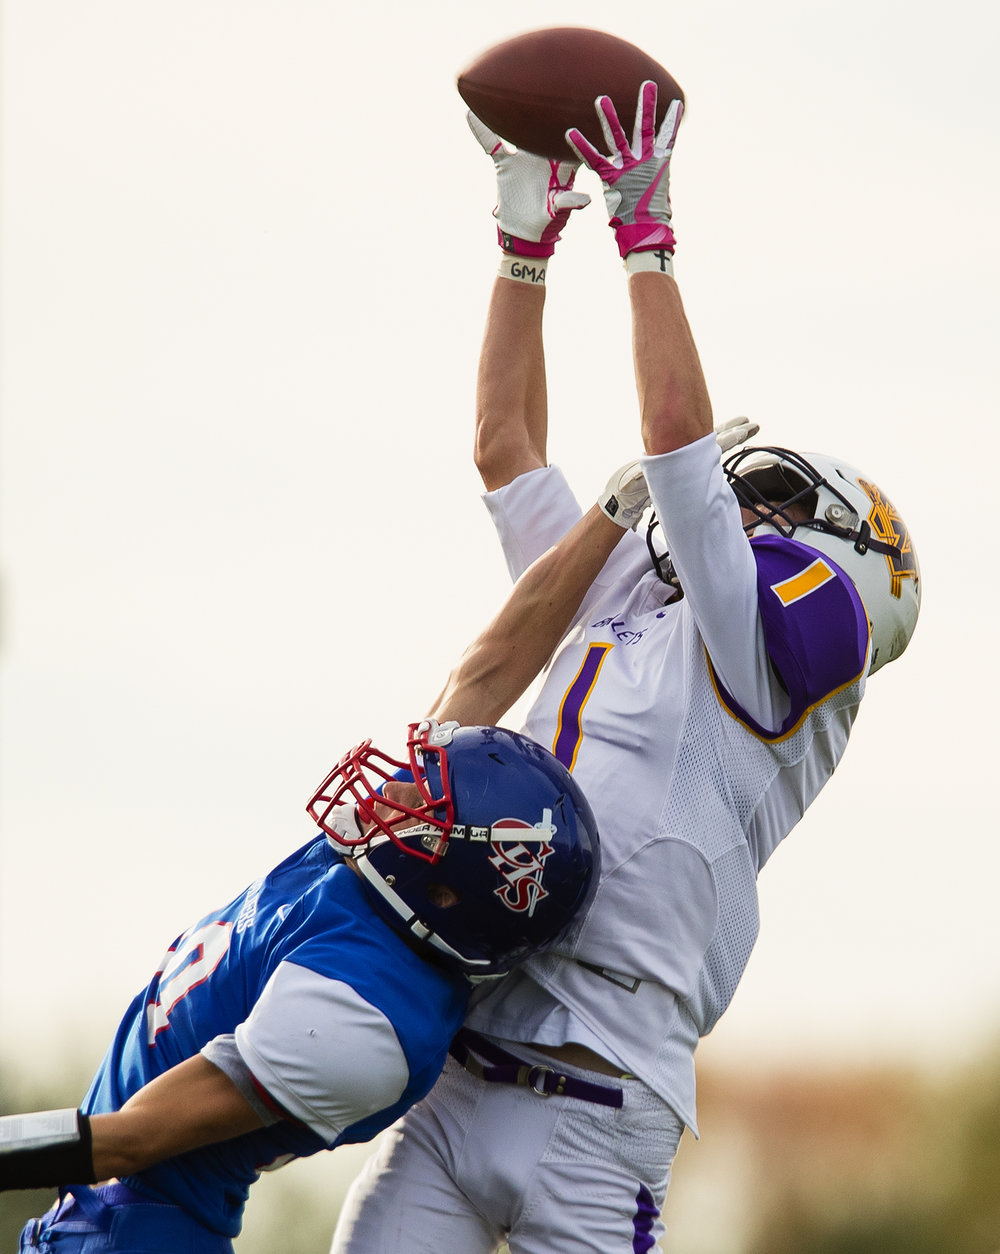 Williamsville's Kenton Baskett leaps for an incomplete pass against Carlinville during the class 3A football playoffs at Carlinville High School Saturday, Nov. 5, 2016. Ted Schurter/The State Journal-Register